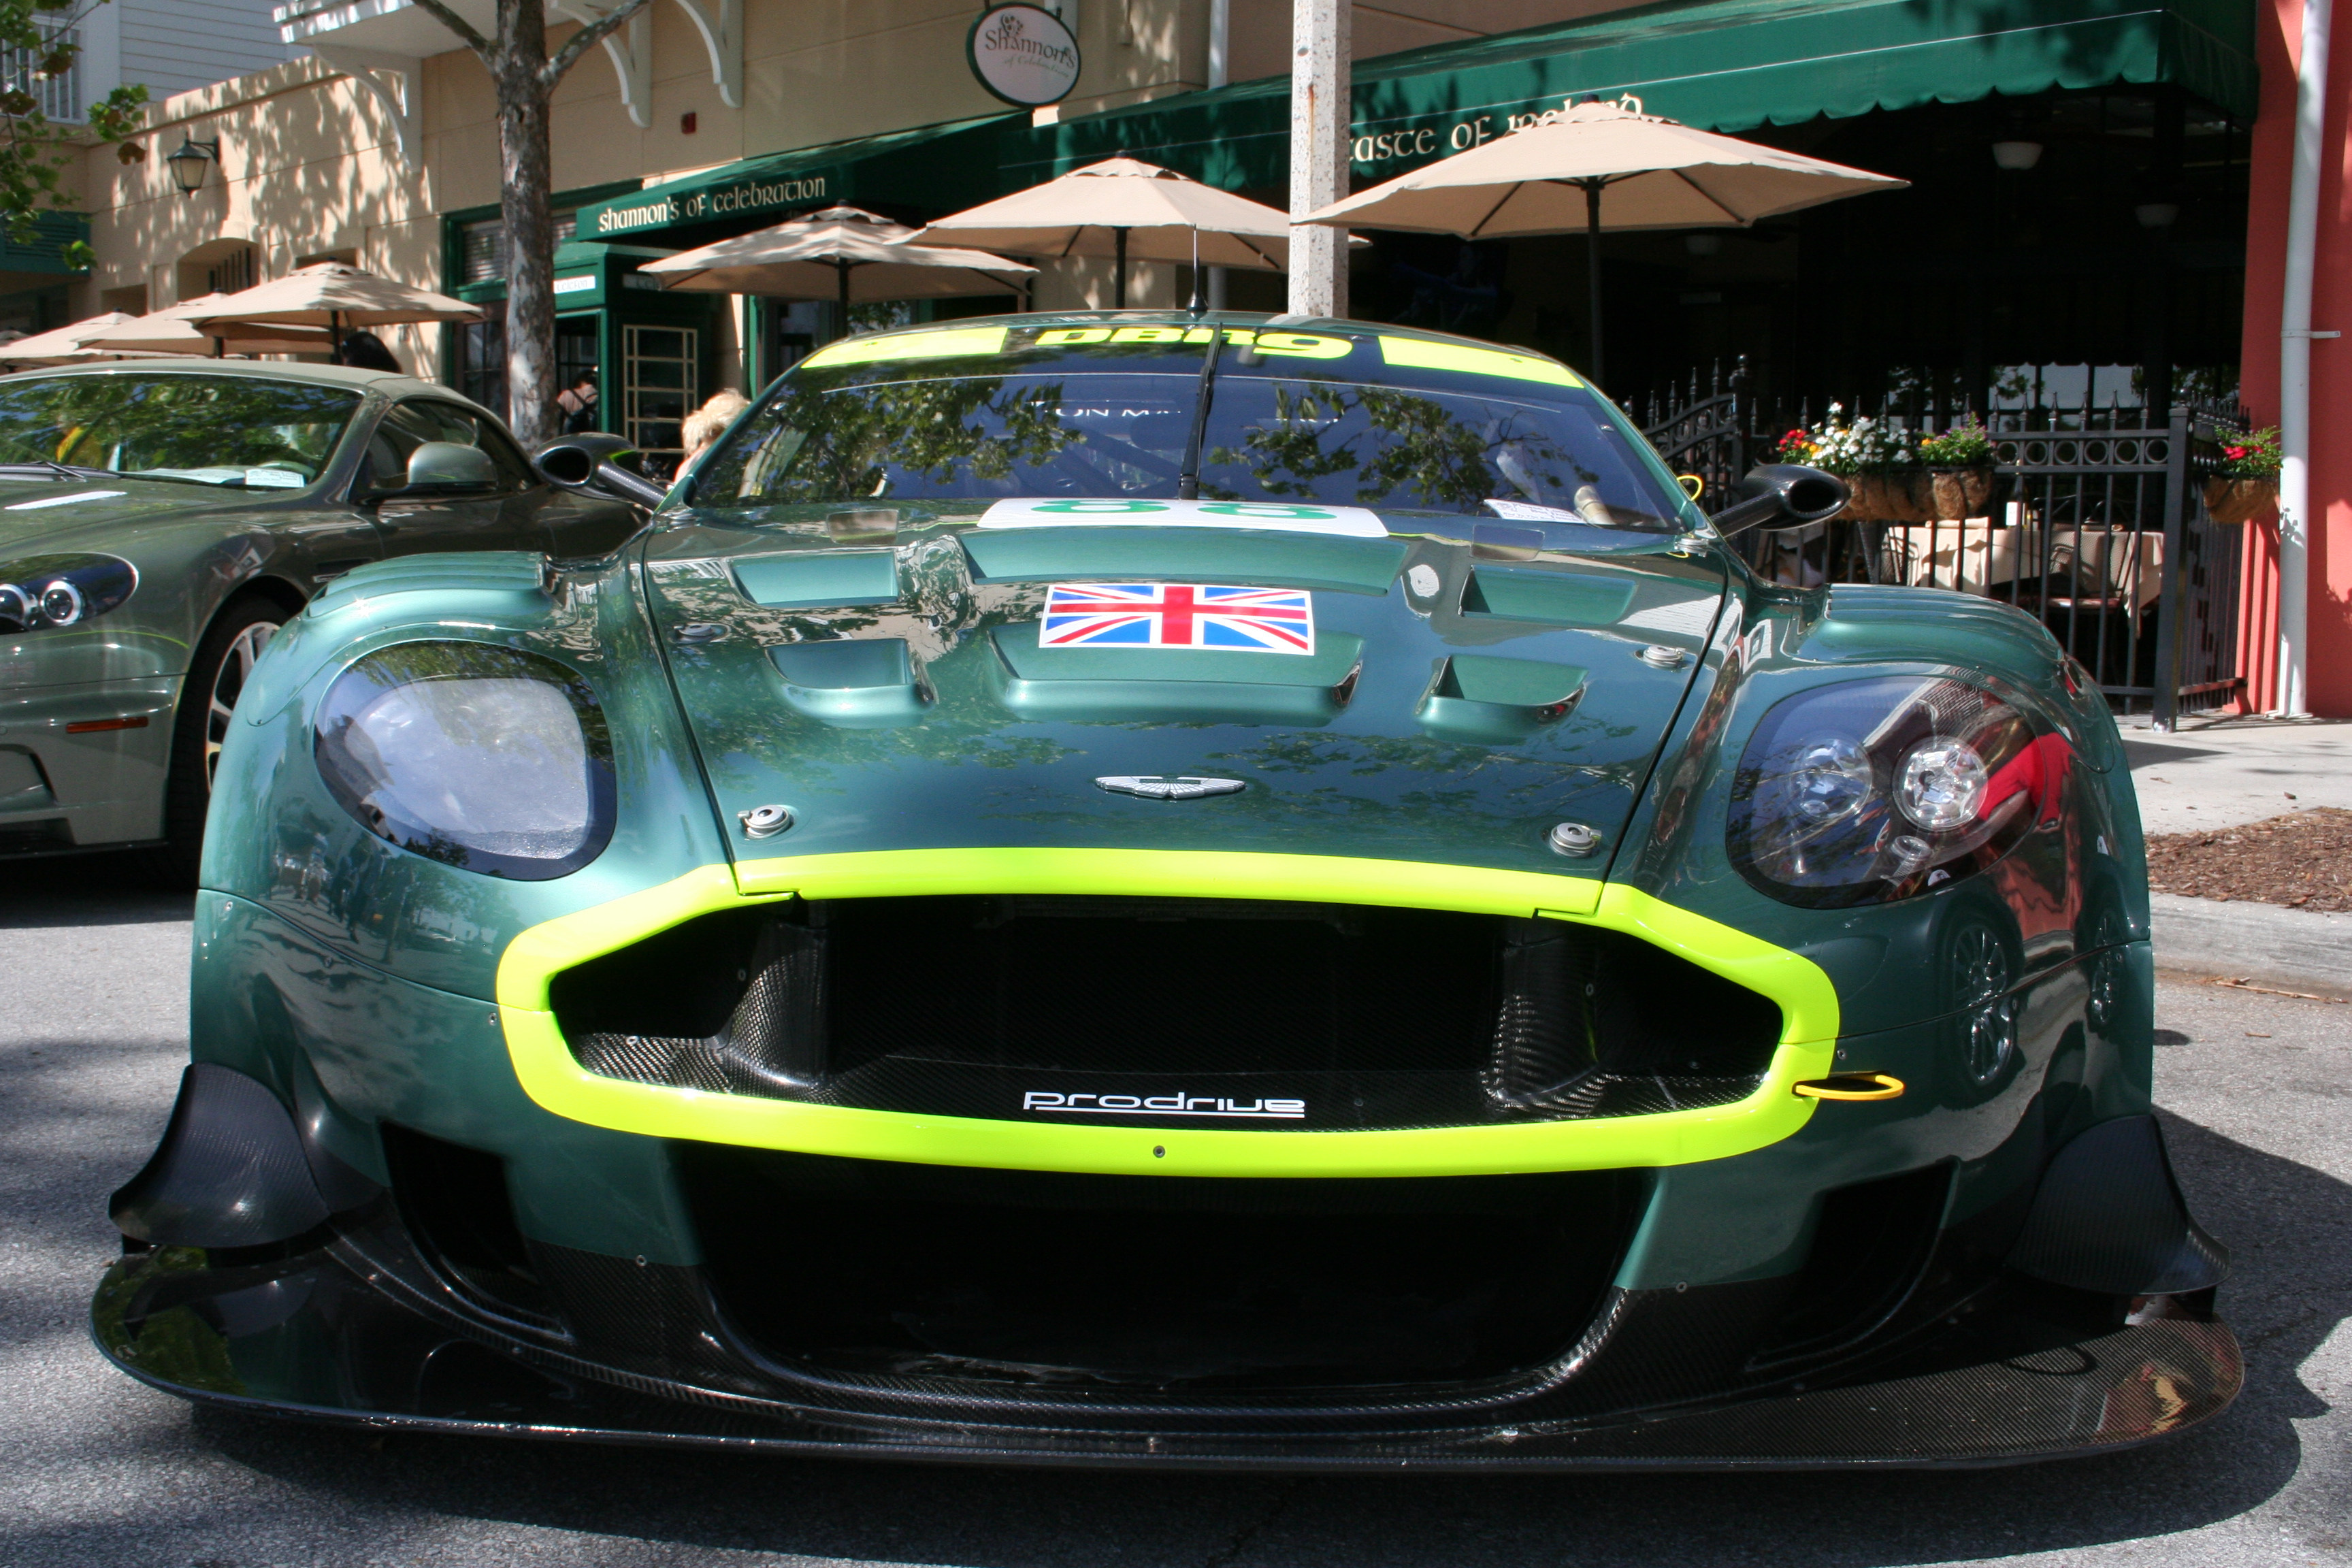 English: Aston Martin DBR9 front